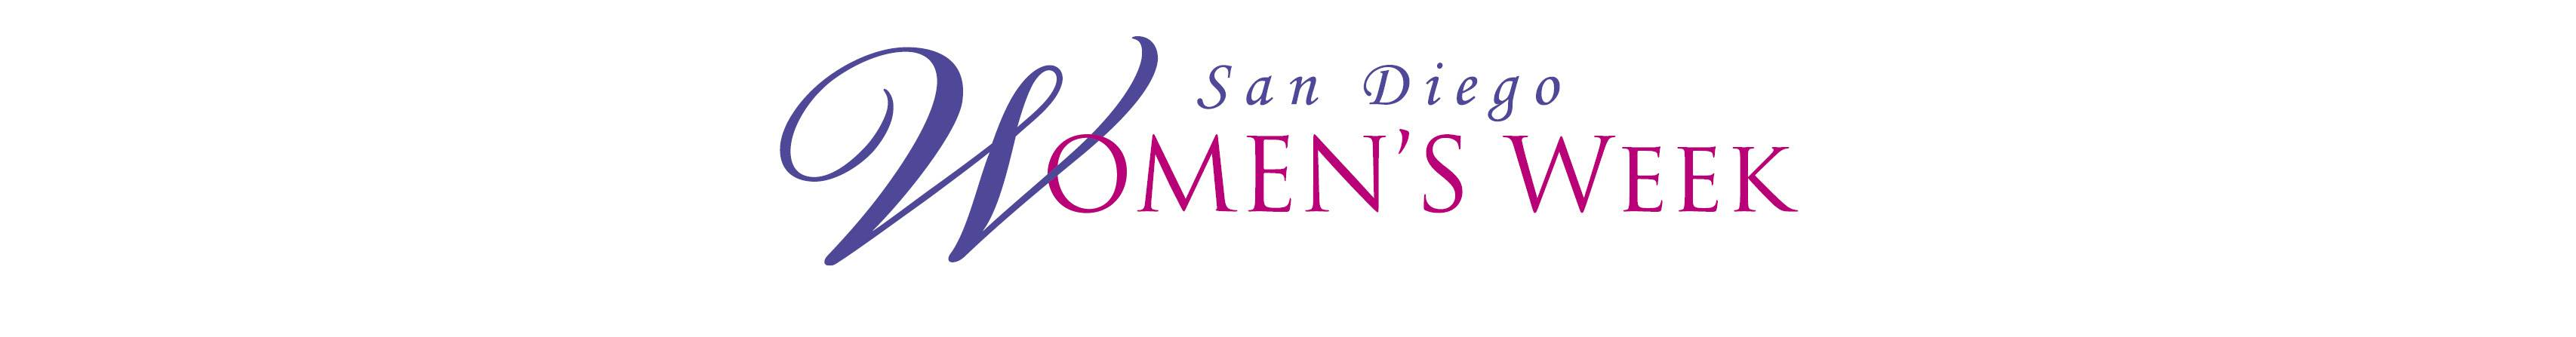 San Diego Women's Week Logo